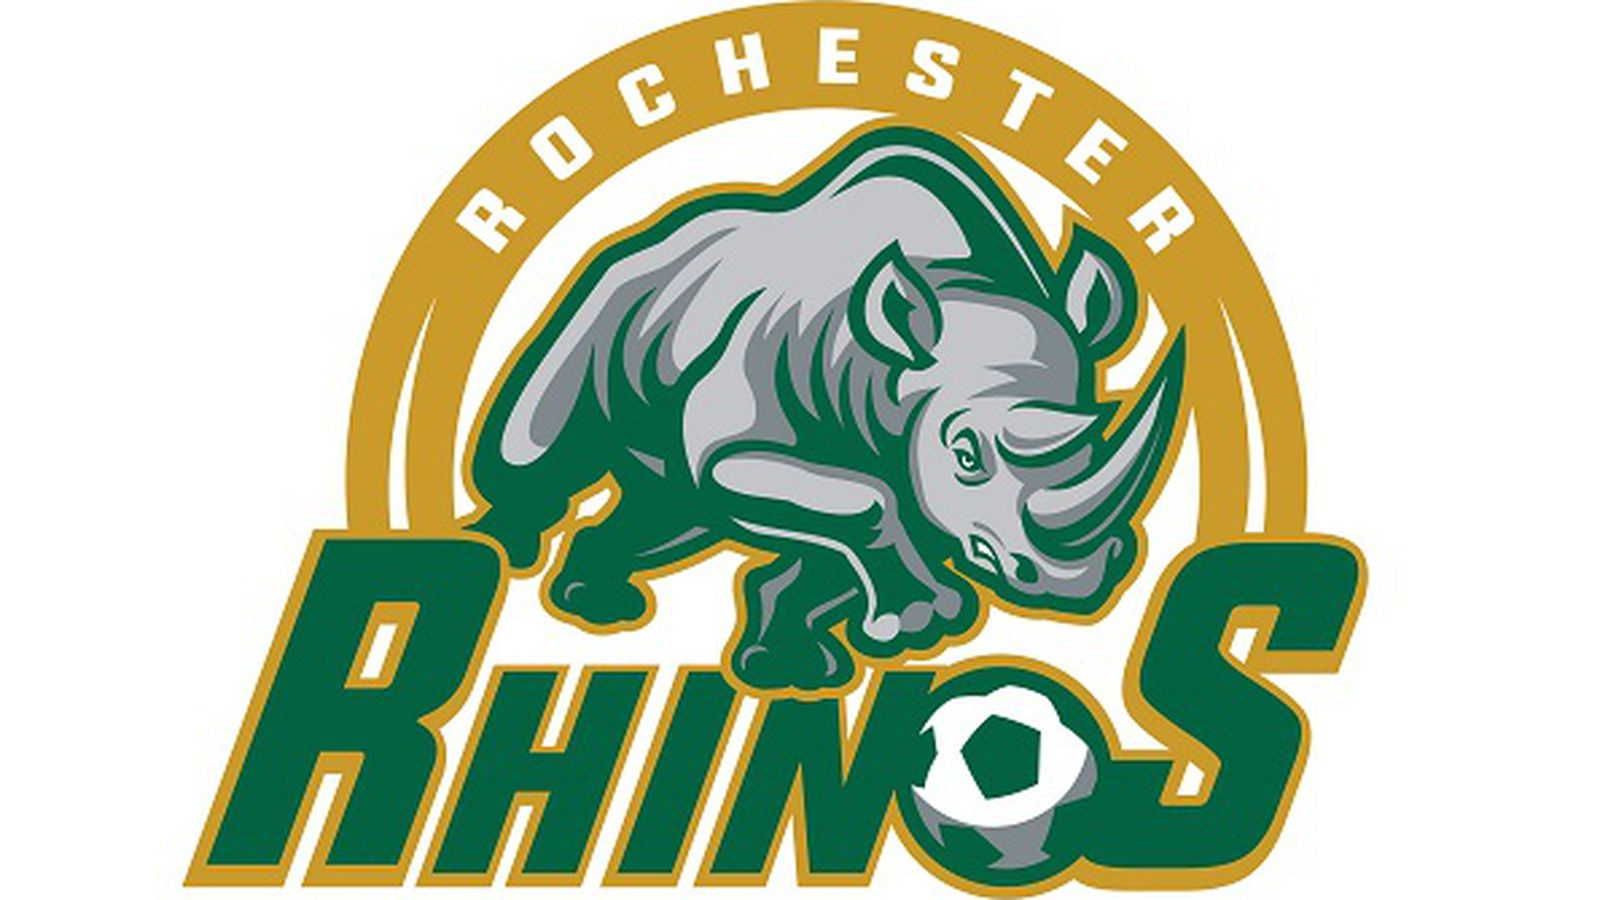 Rochesterrhinos2016secondary.0.0